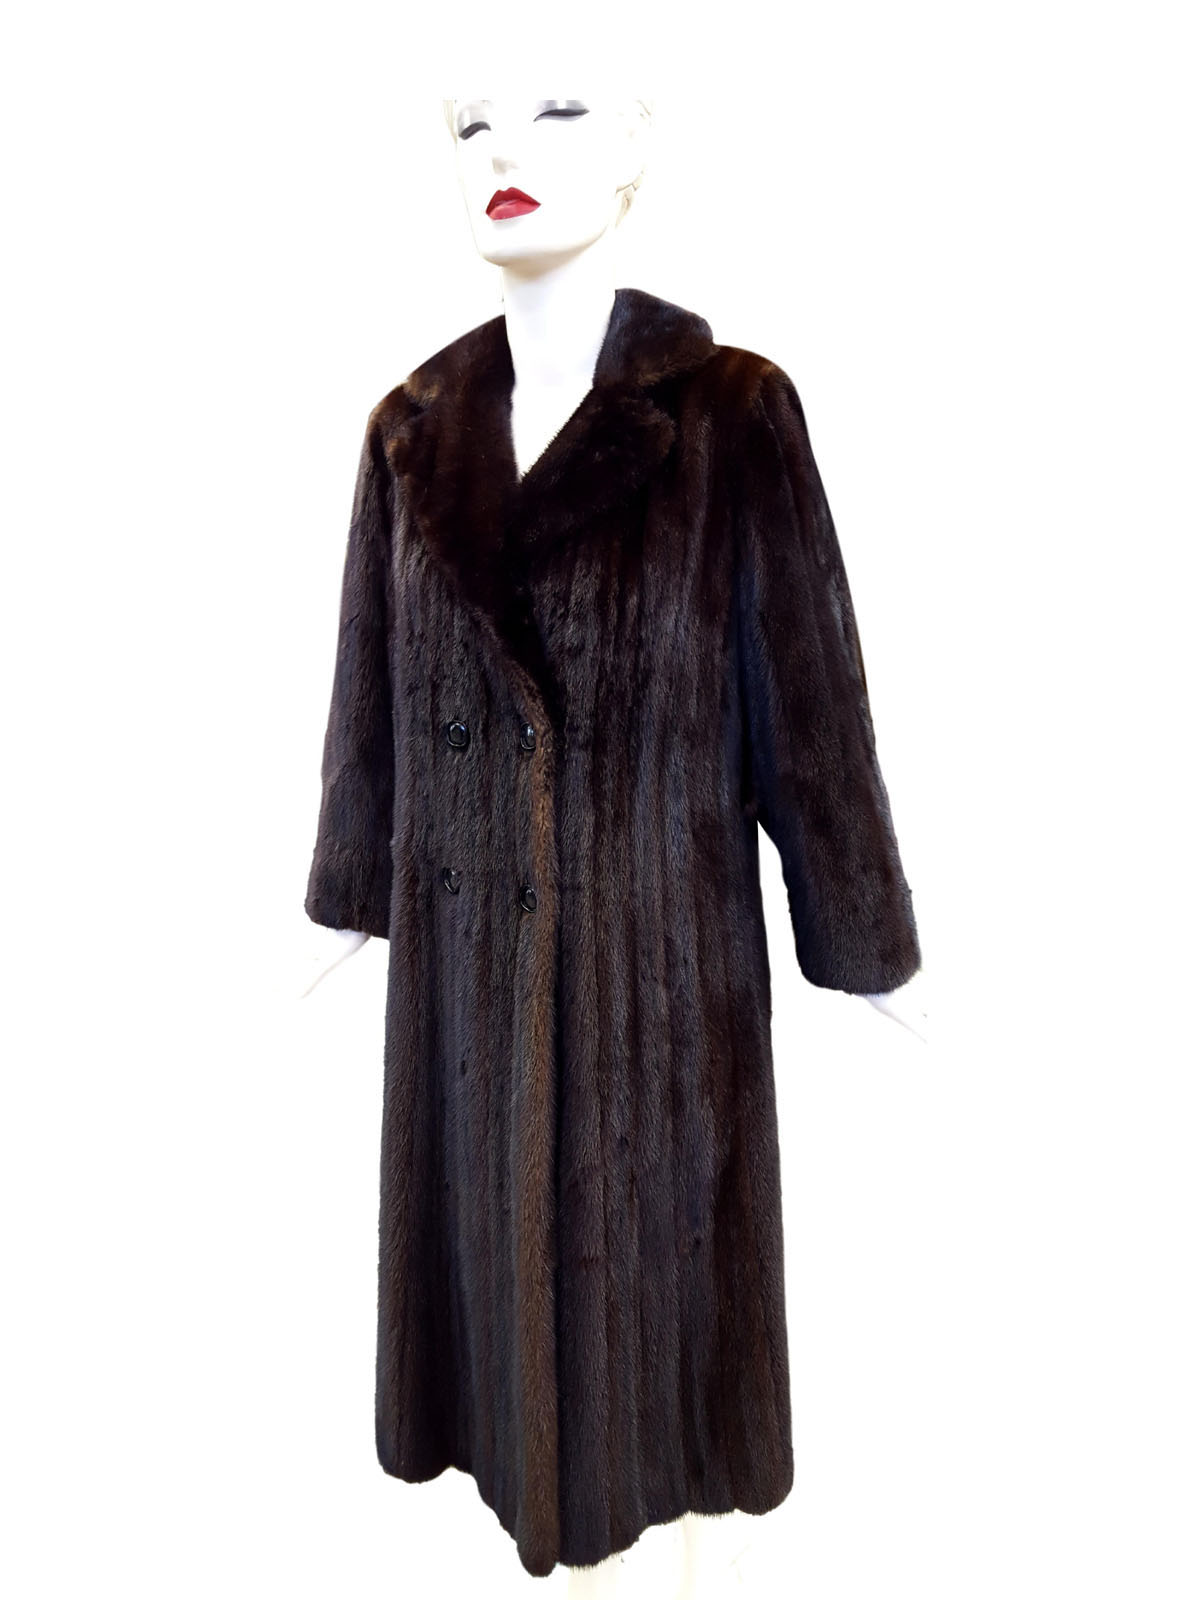 Mahogany Petite Shaped Coat